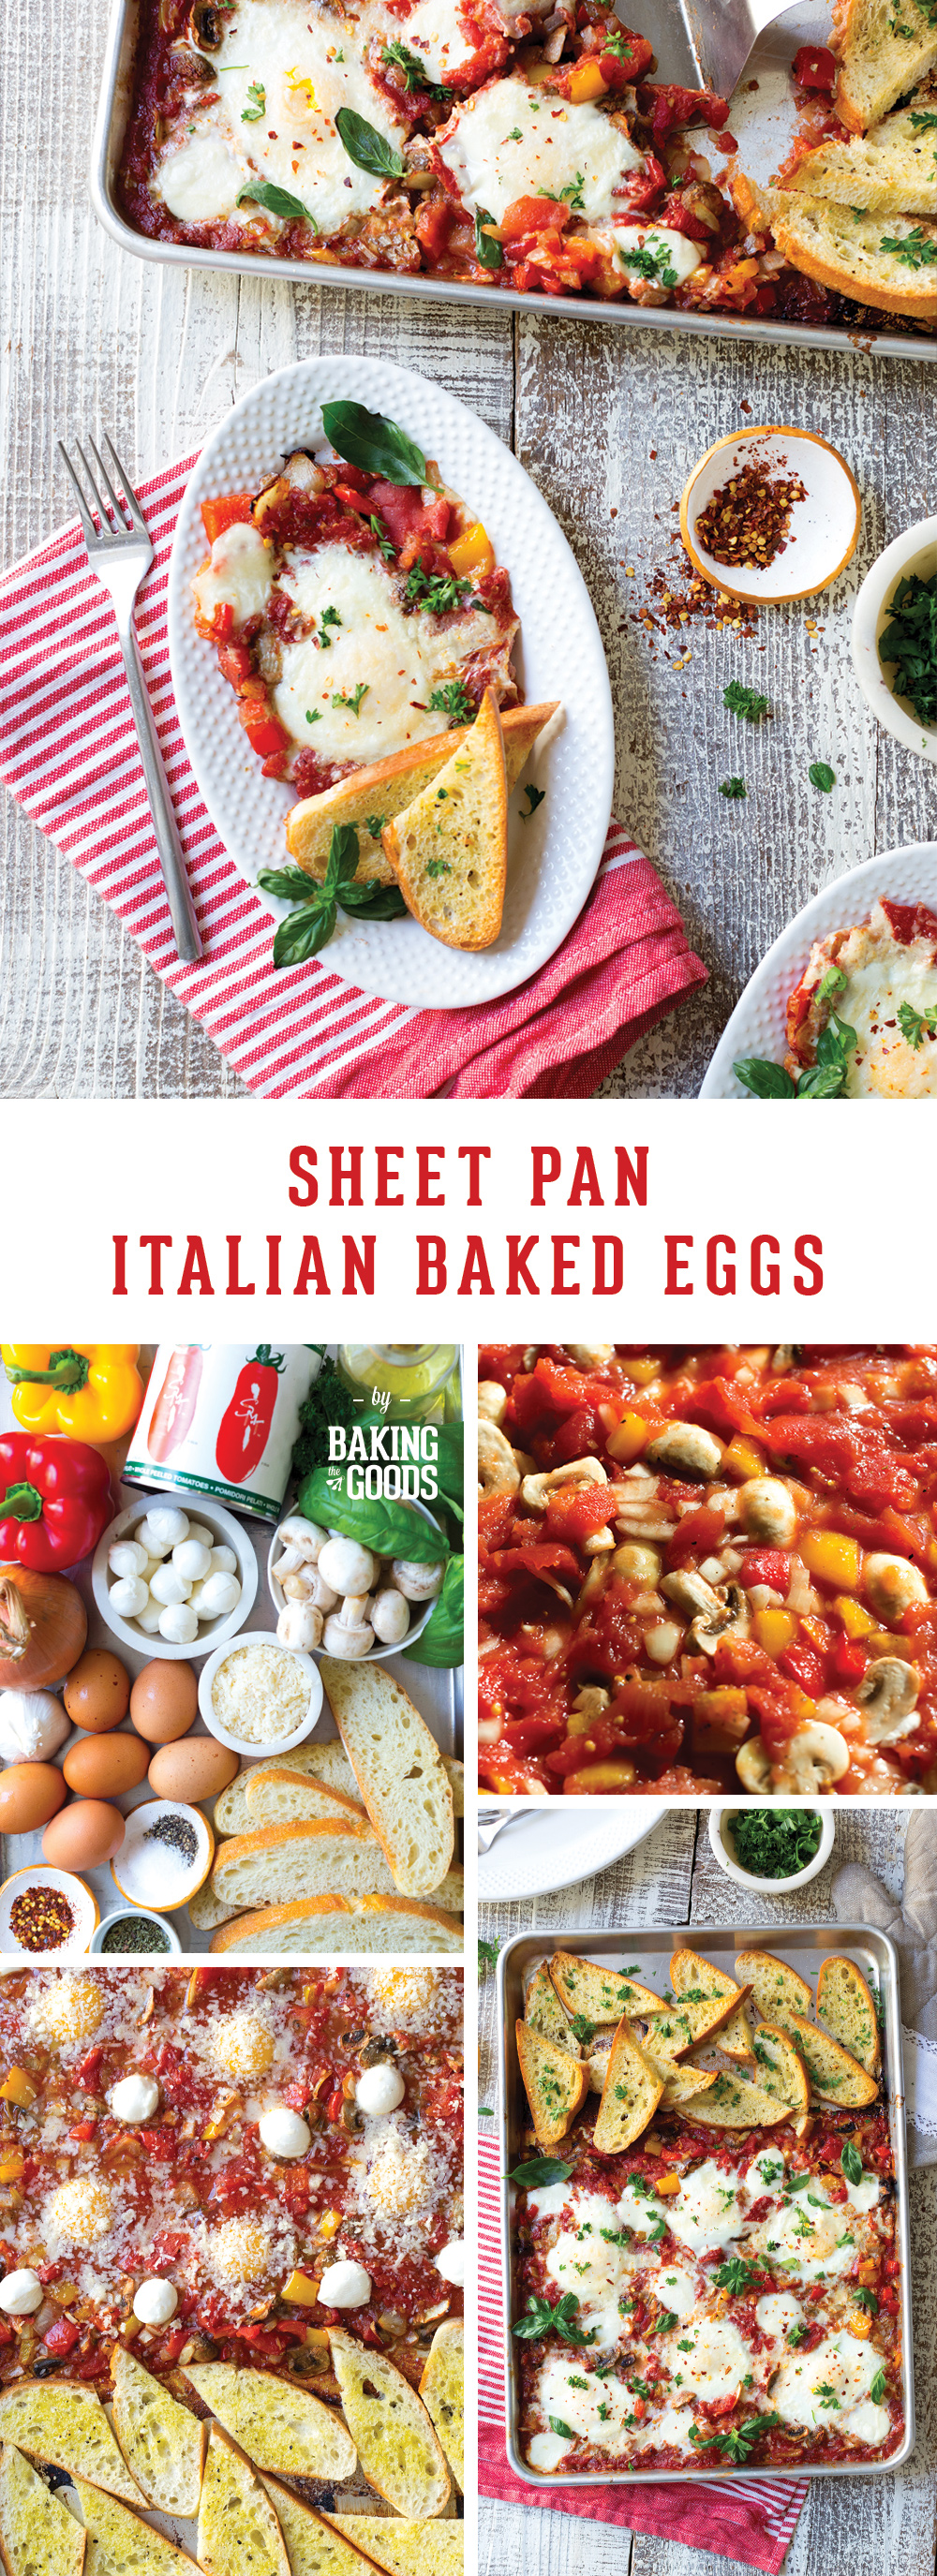 Sheet Pan Italian Baked Eggs by Baking The Goods